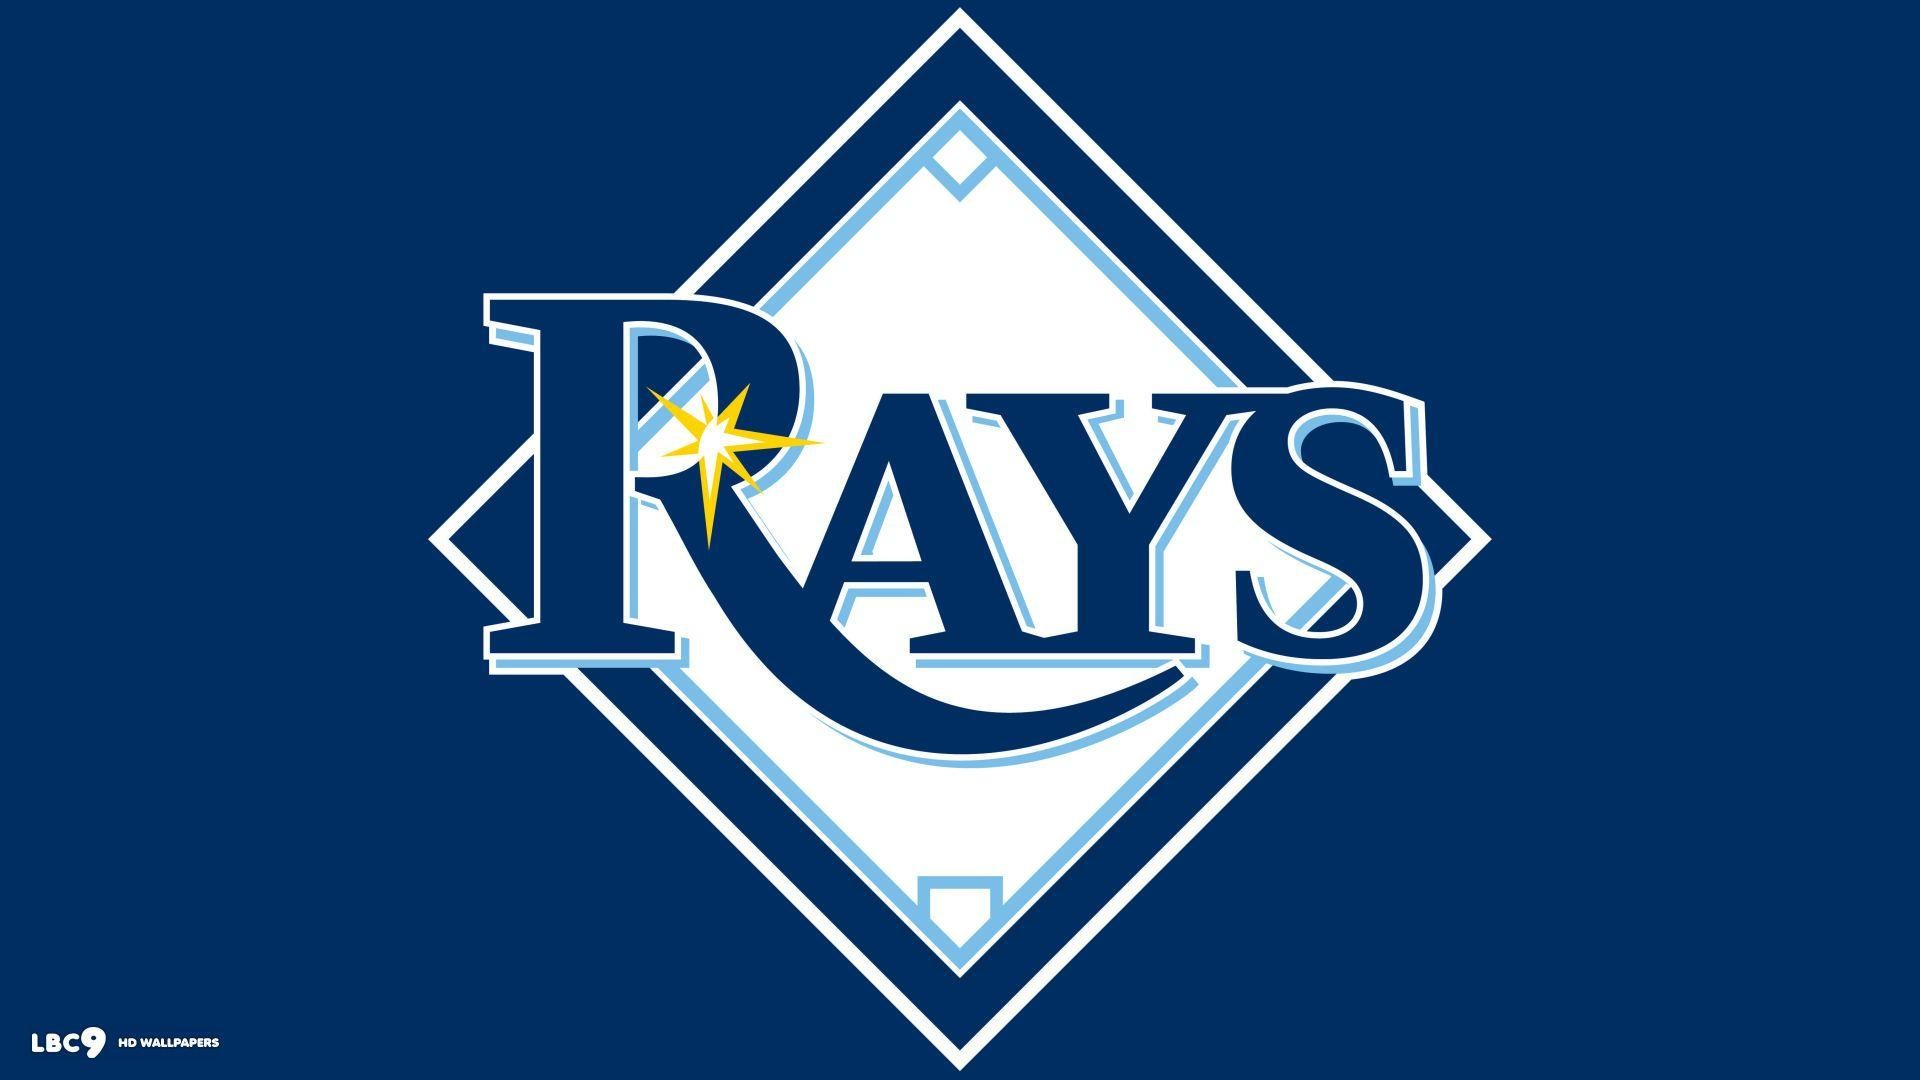 1920x1080 tampa bay rays wallpaper 1/6 | mlb teams hd backgrounds